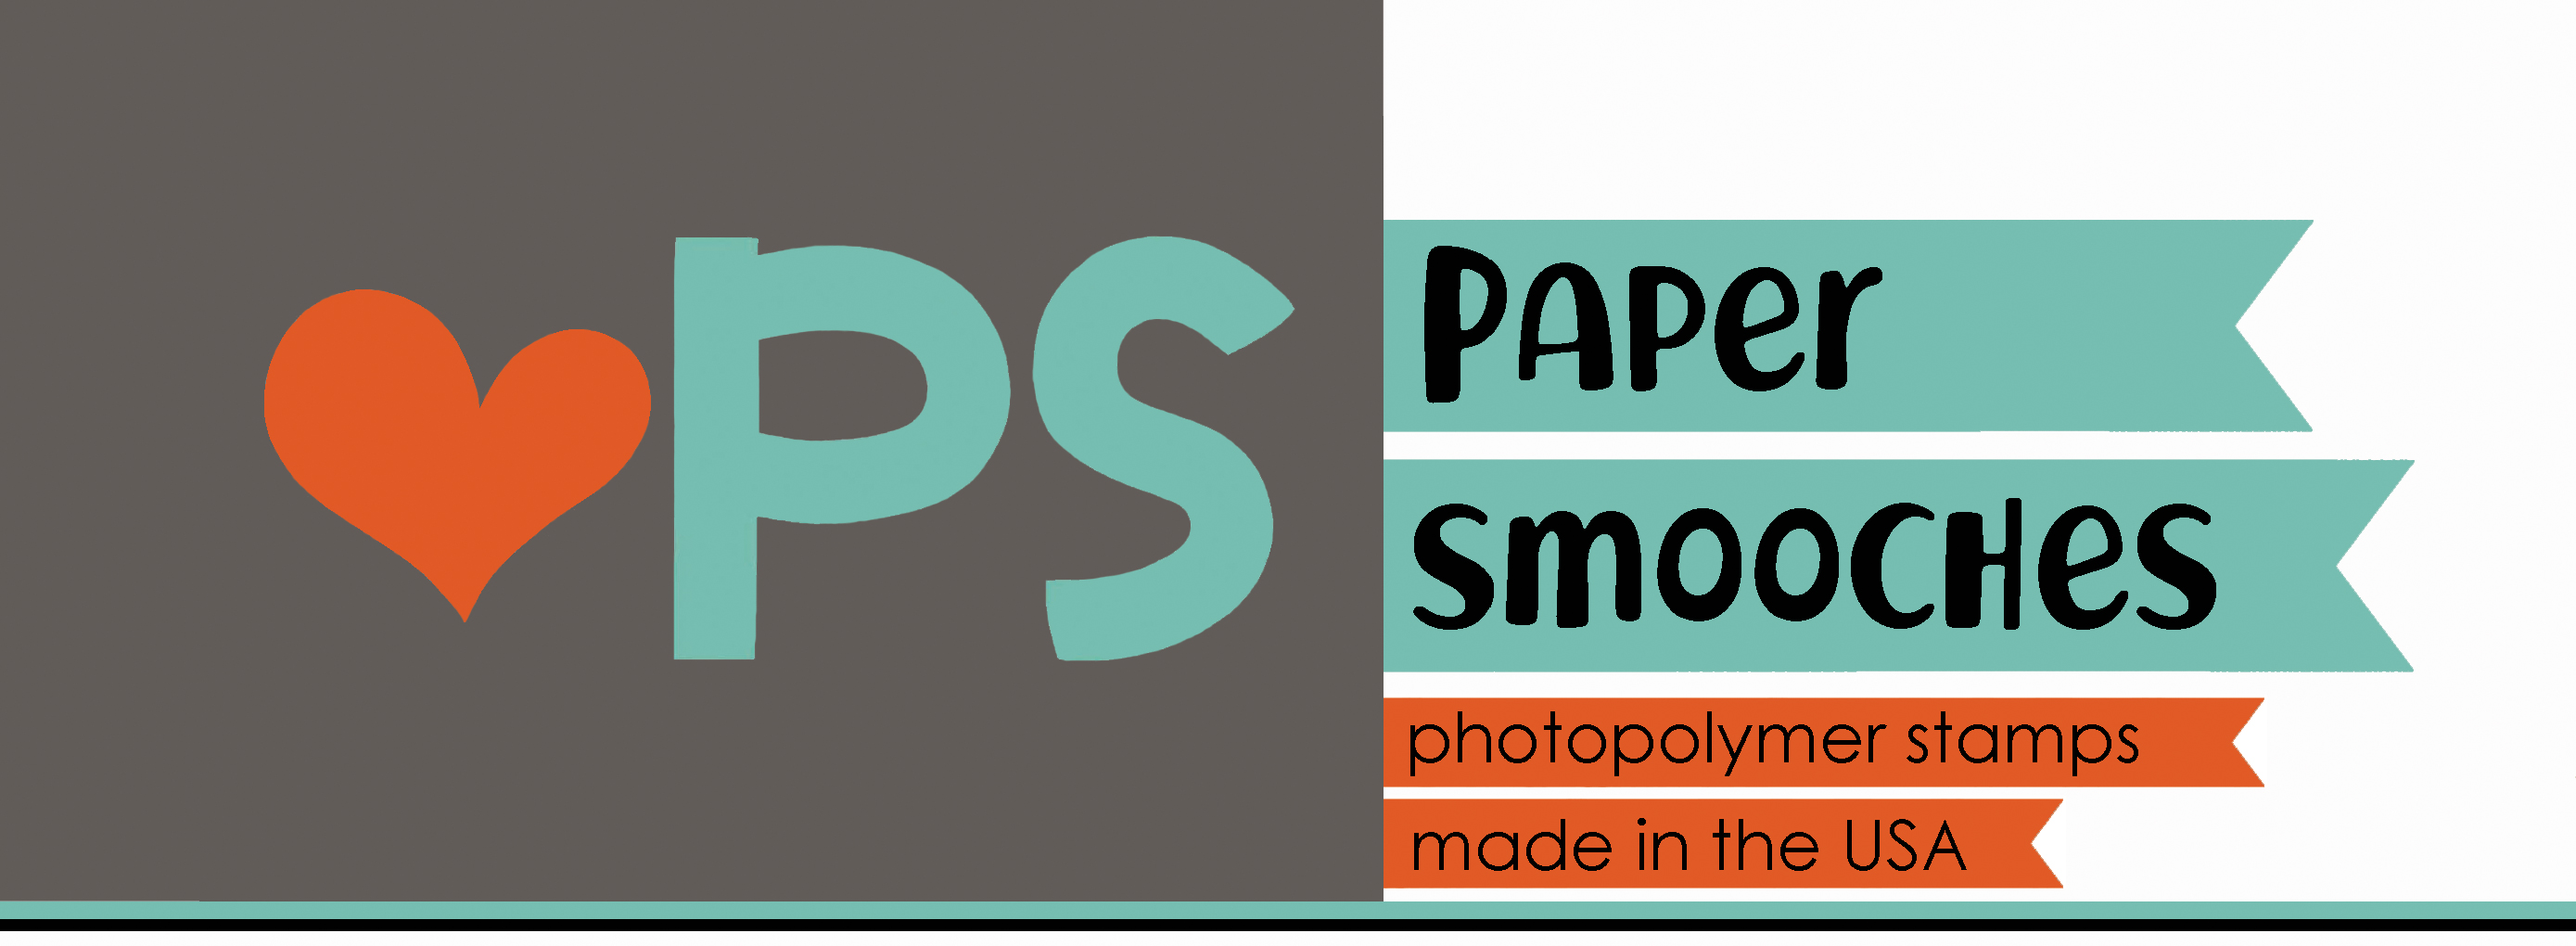 Paper Smooches Header